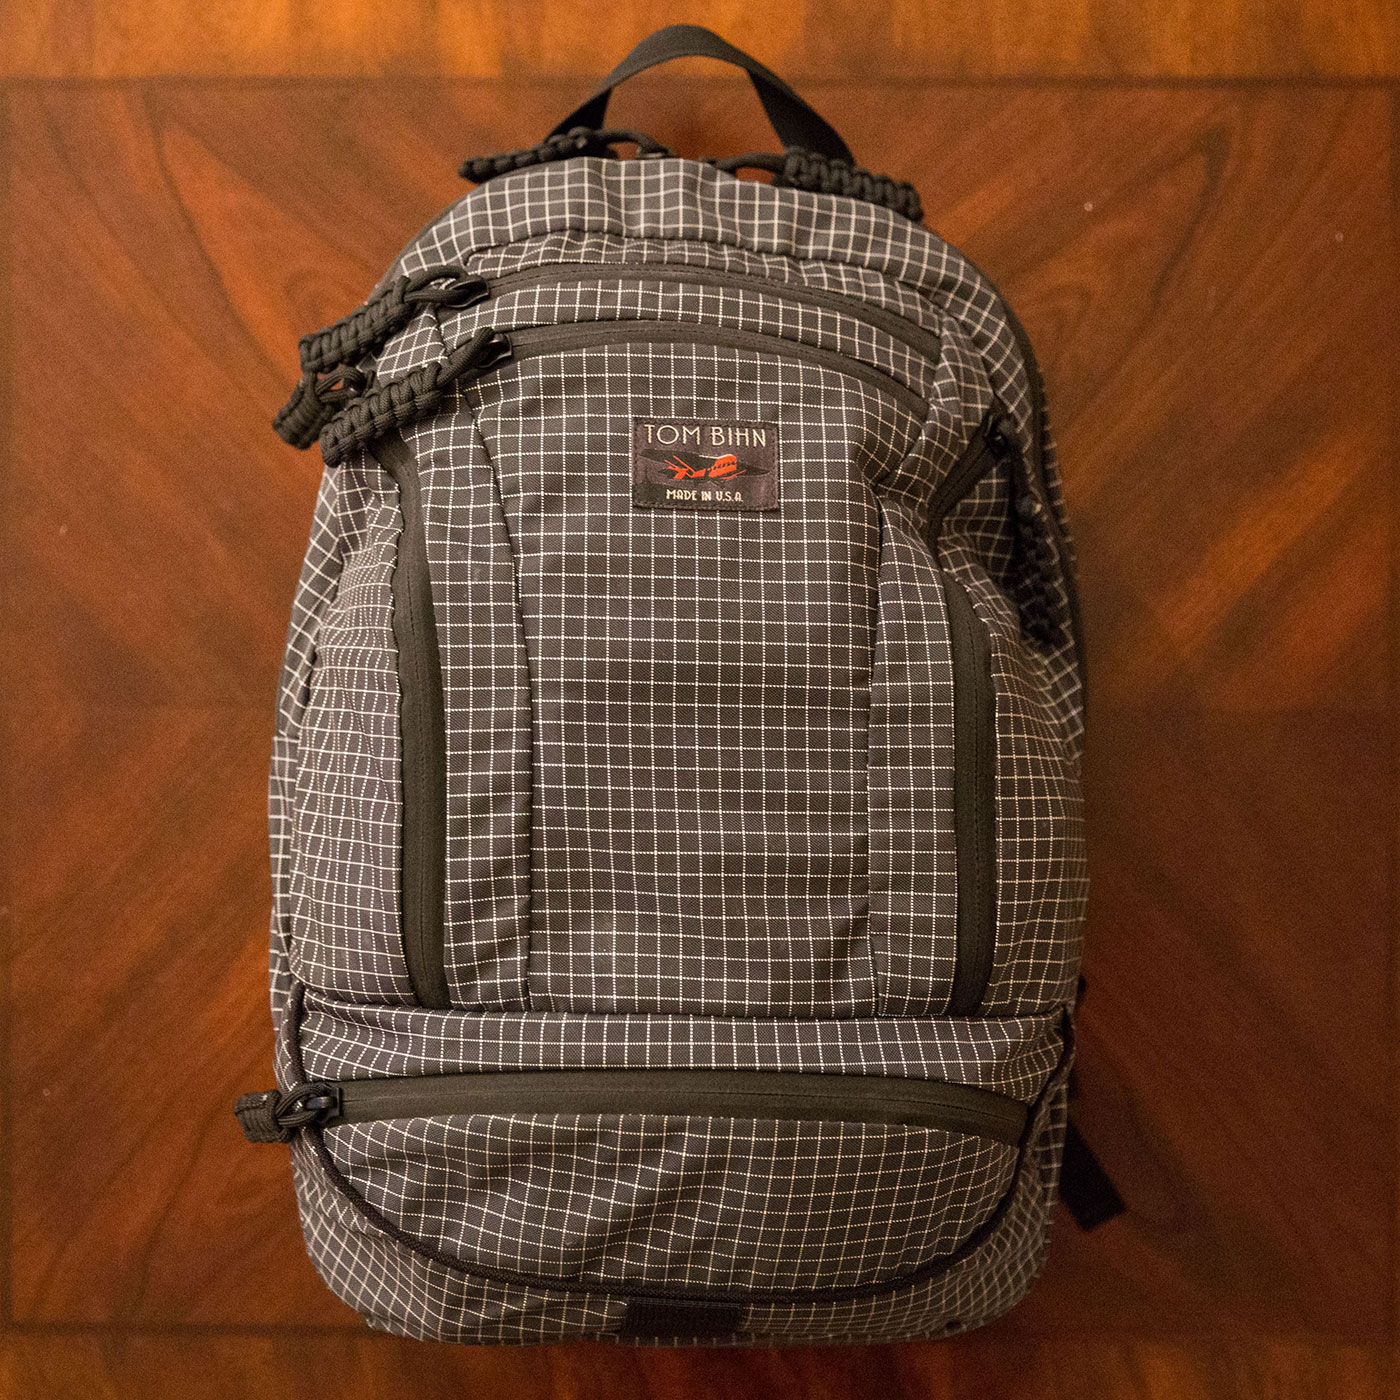 Tom Bihn Synapse 19